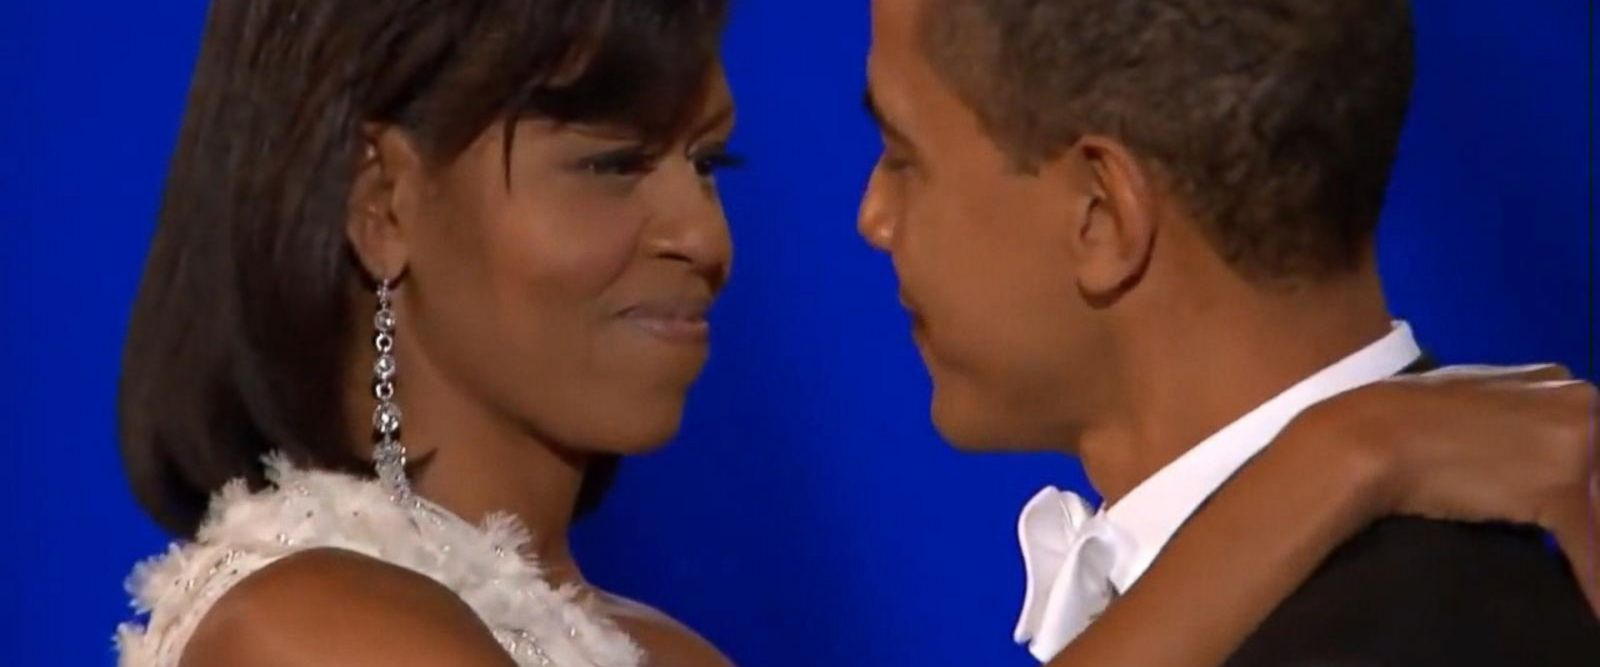 VIDEO: Memorable Moments of Michelle Obama as First Lady